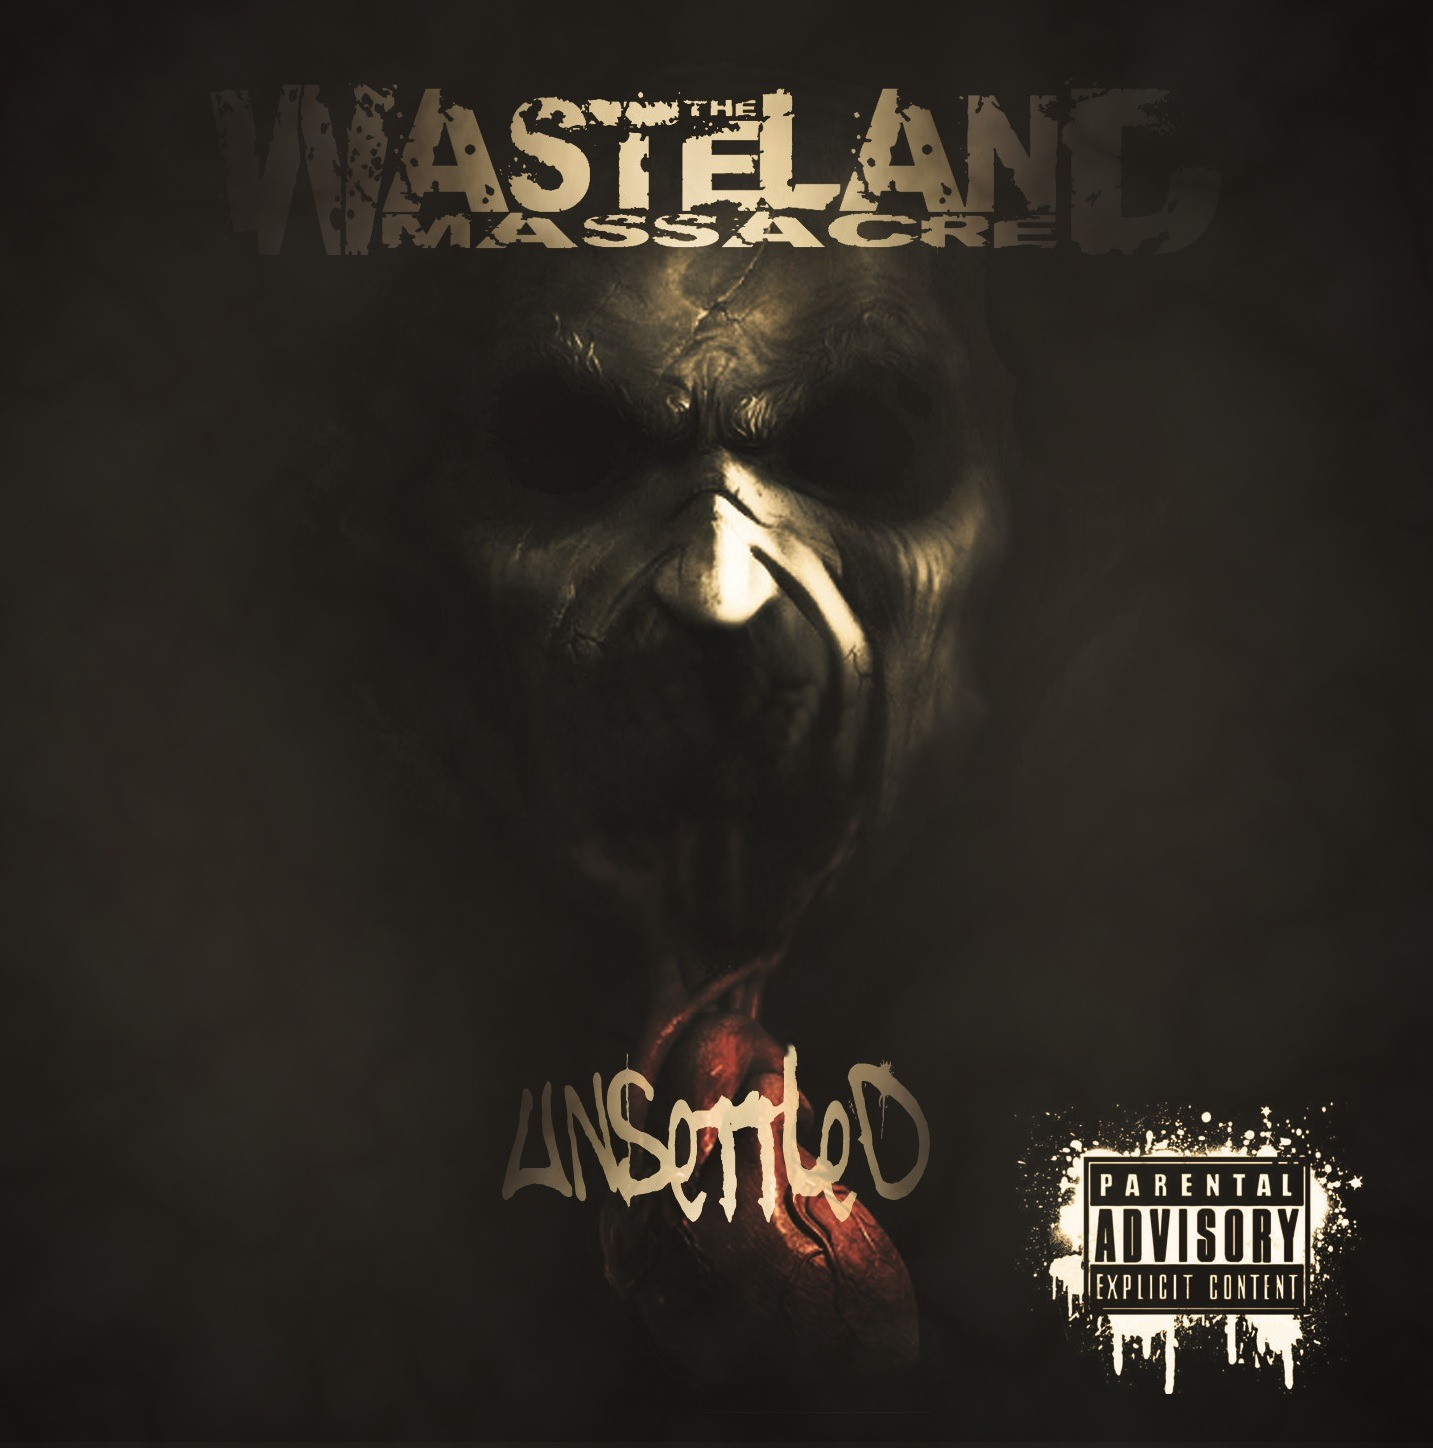 THE WASTELAND MASSACRE – Unsettled, 2013